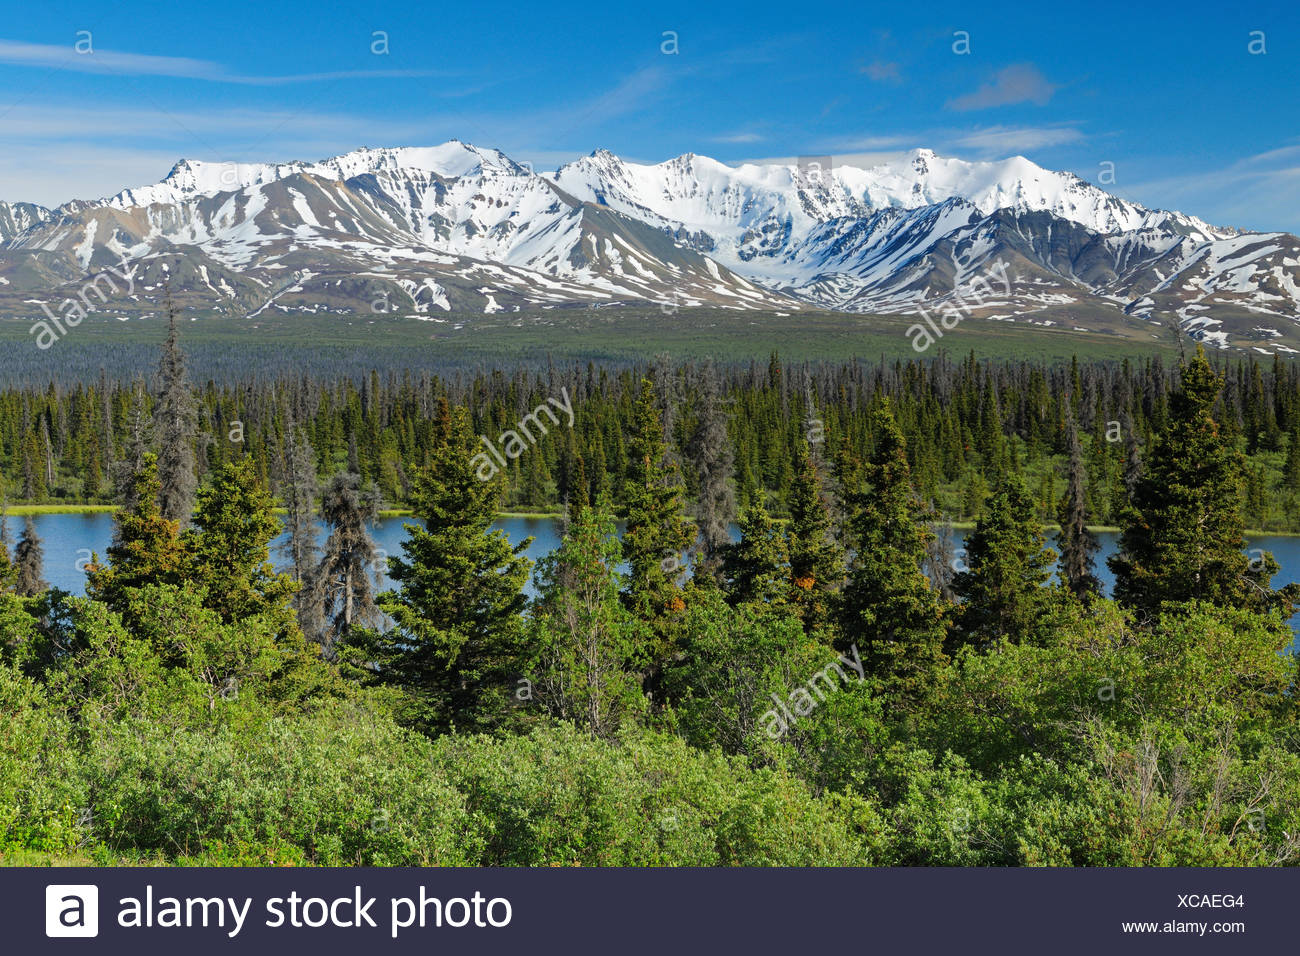 We encourage our guests to take things easy and to maybe have an evening campfire and socialize a bit. St Elias Mountains And Boreal Forest Kluane National Park Yukon Canada Stock Photo Alamy